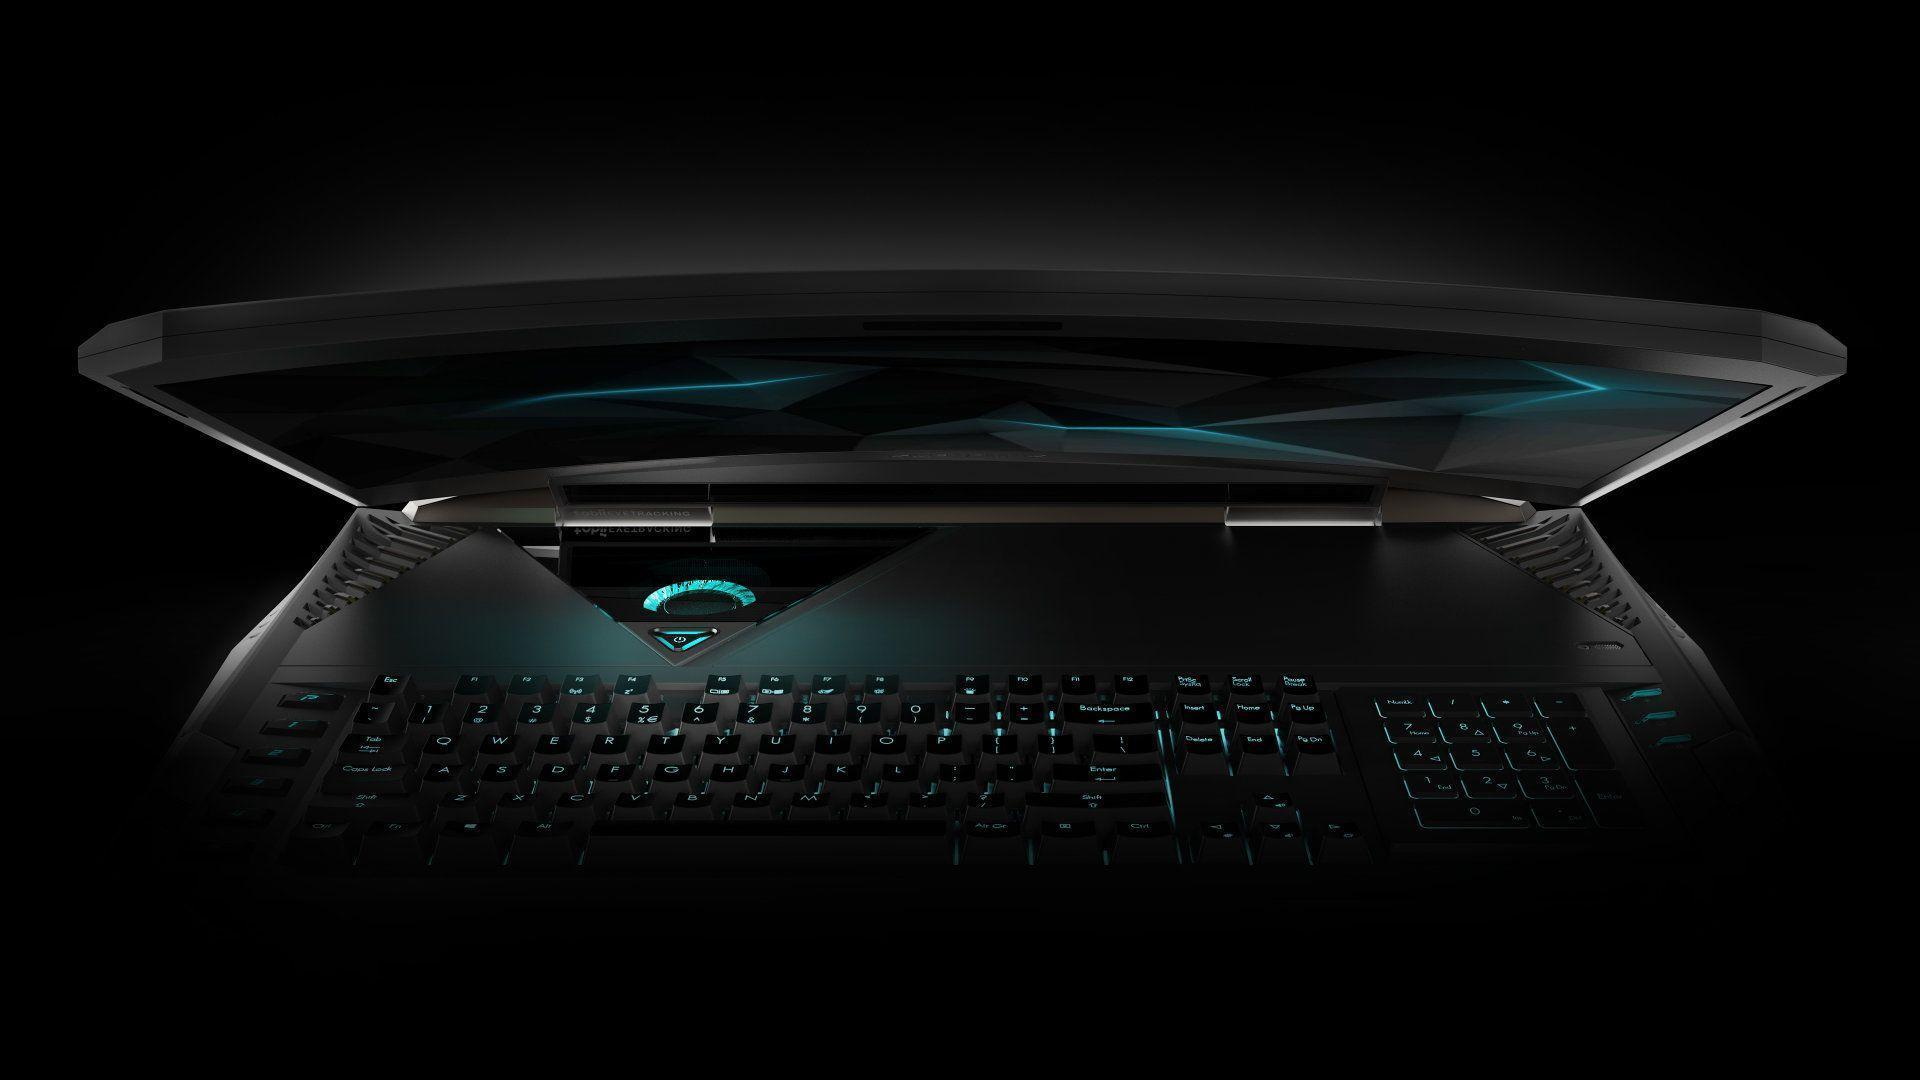 Acer's new Predator 21 X World's First Curved Screen Notebook